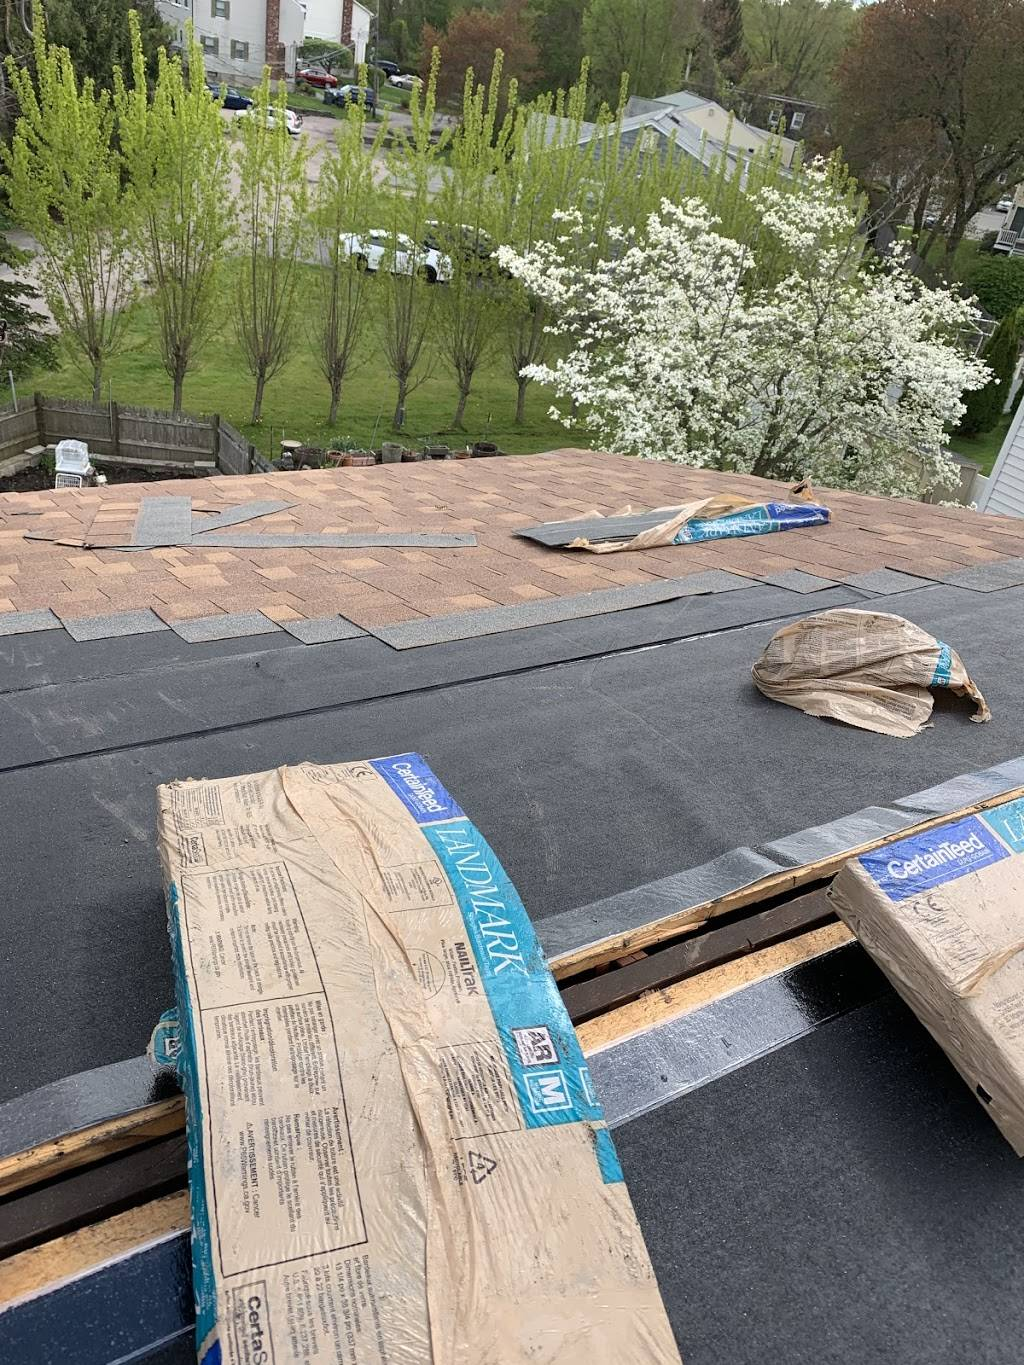 Recon Roofing & Gutters, LLC. - roofing contractor  | Photo 4 of 10 | Address: 41 Zoar Ave, Dedham, MA 02026, USA | Phone: (617) 924-1133